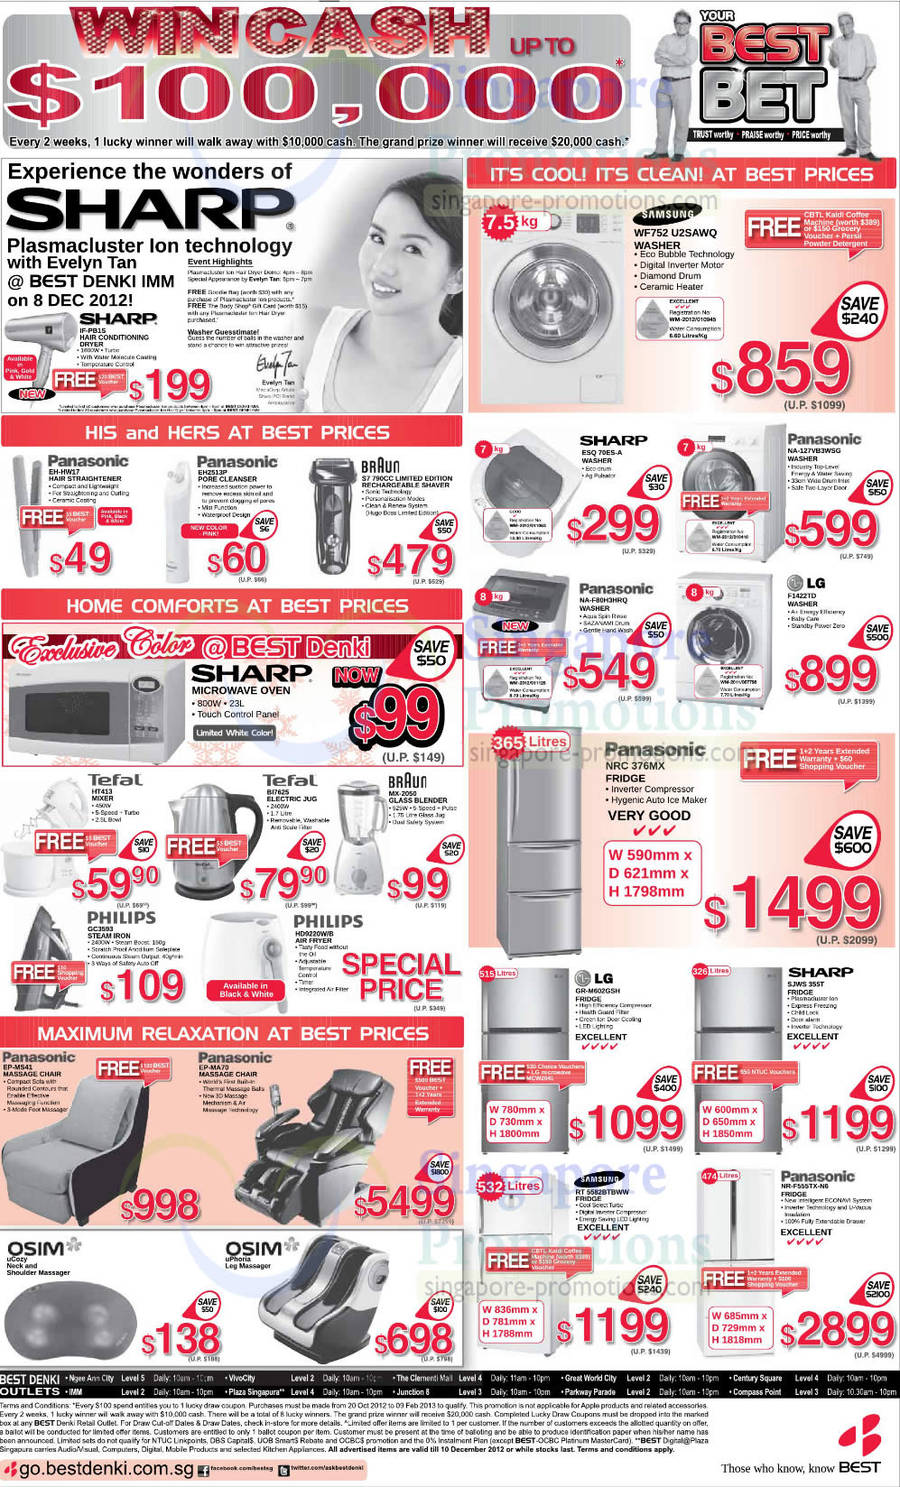 Sharp IF-P816 Hair Dryer,Samsung WF752 U2SAWQ Washer,Panasonic EH-HW17 Hair Straightener,Panasonic EH2513P Pore Cleanser,Braun S7 790CC Shaver,Sharp ESQ 70ES-A Washer,Panasonic NA-127VB3WSG Washer,Panasonic NA-F80H3HRQ Washer,LG F1422TD Washer,Tefal HT413 Mixer,Tefal BI7825 Electric Jug,Braun MX-205C Blender,Philips GC3593 Steam Iron,Philips HD9220WIB Air Fryer,Panasonic NRC 376MX Fridge,LG GR-M602GSH Fridge,Sharp SJWS 955T Fridge,Samsung RT 5582BTBWW Fridge,Panasonic NR-F555TX-N6 Fridge,OSIM uCozy Massager,OSIM uPhoria Leg Massager